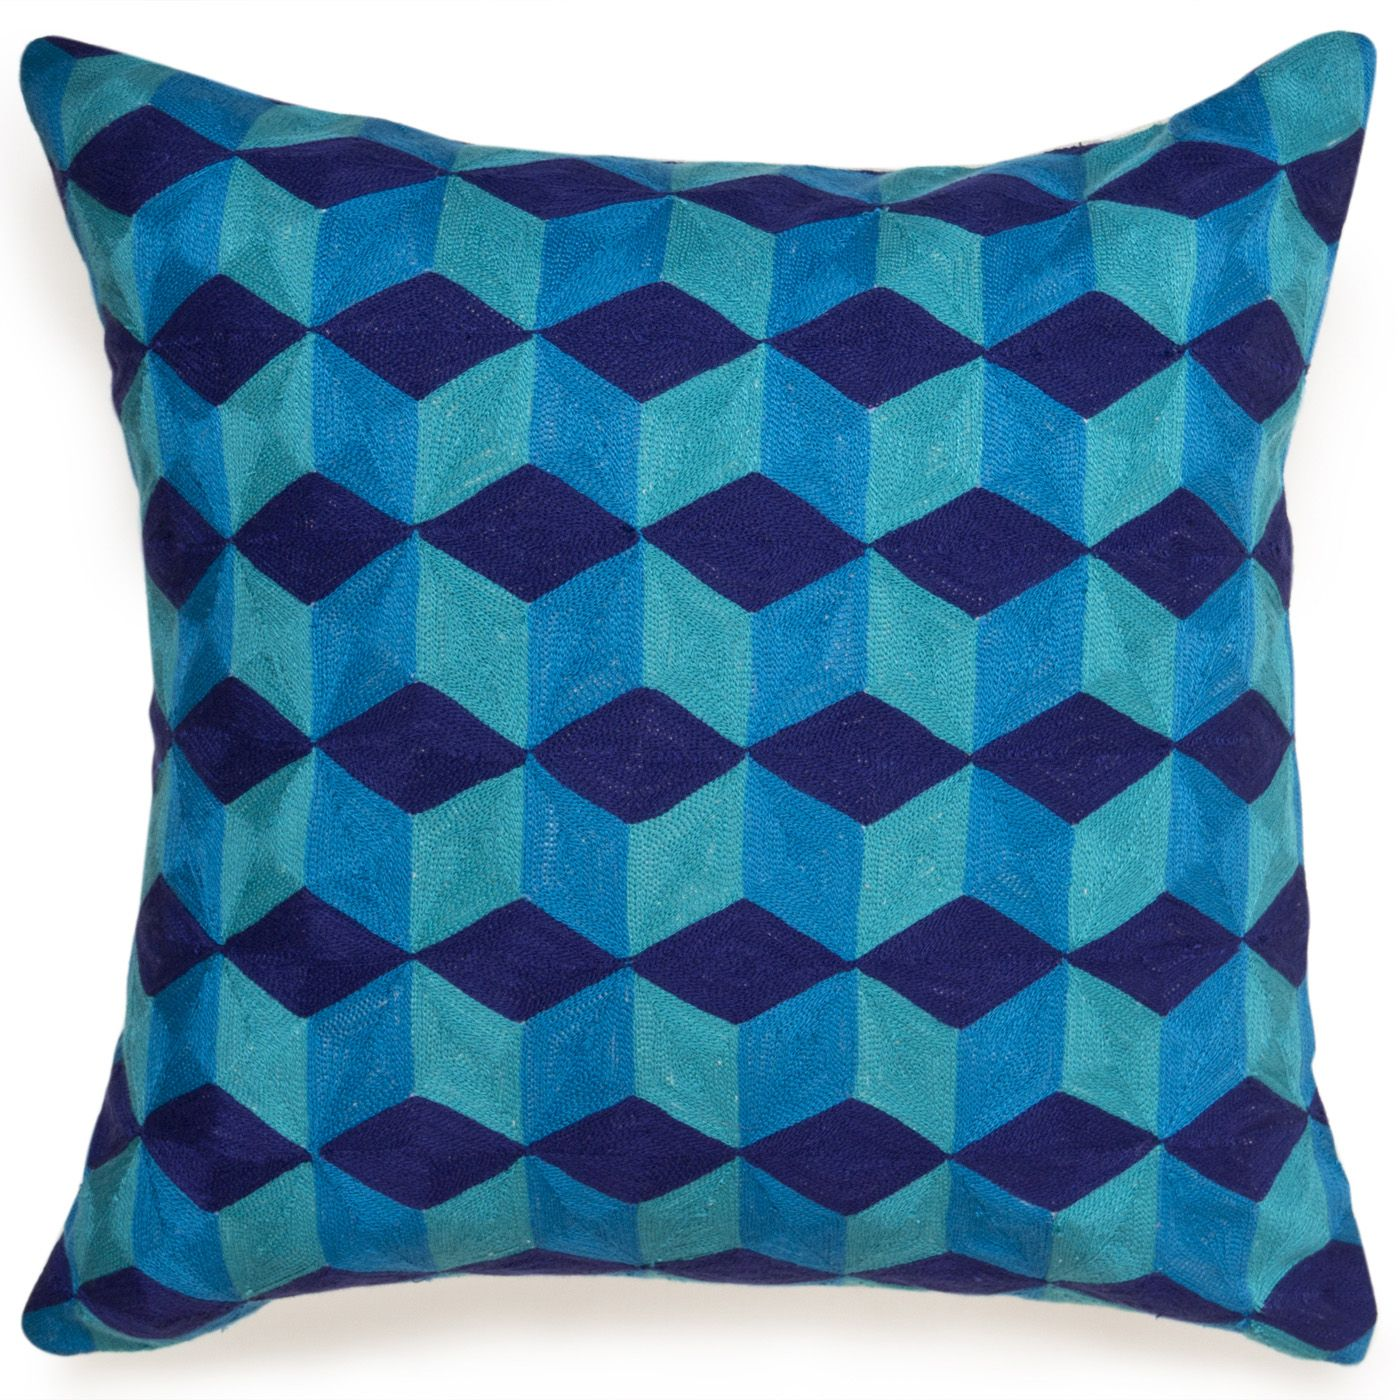 lindo conjin modern throw pillows  jaipur cubes linen pillow  - lindo conjin modern throw pillows  jaipur cubes linen pillow  jonathanadler